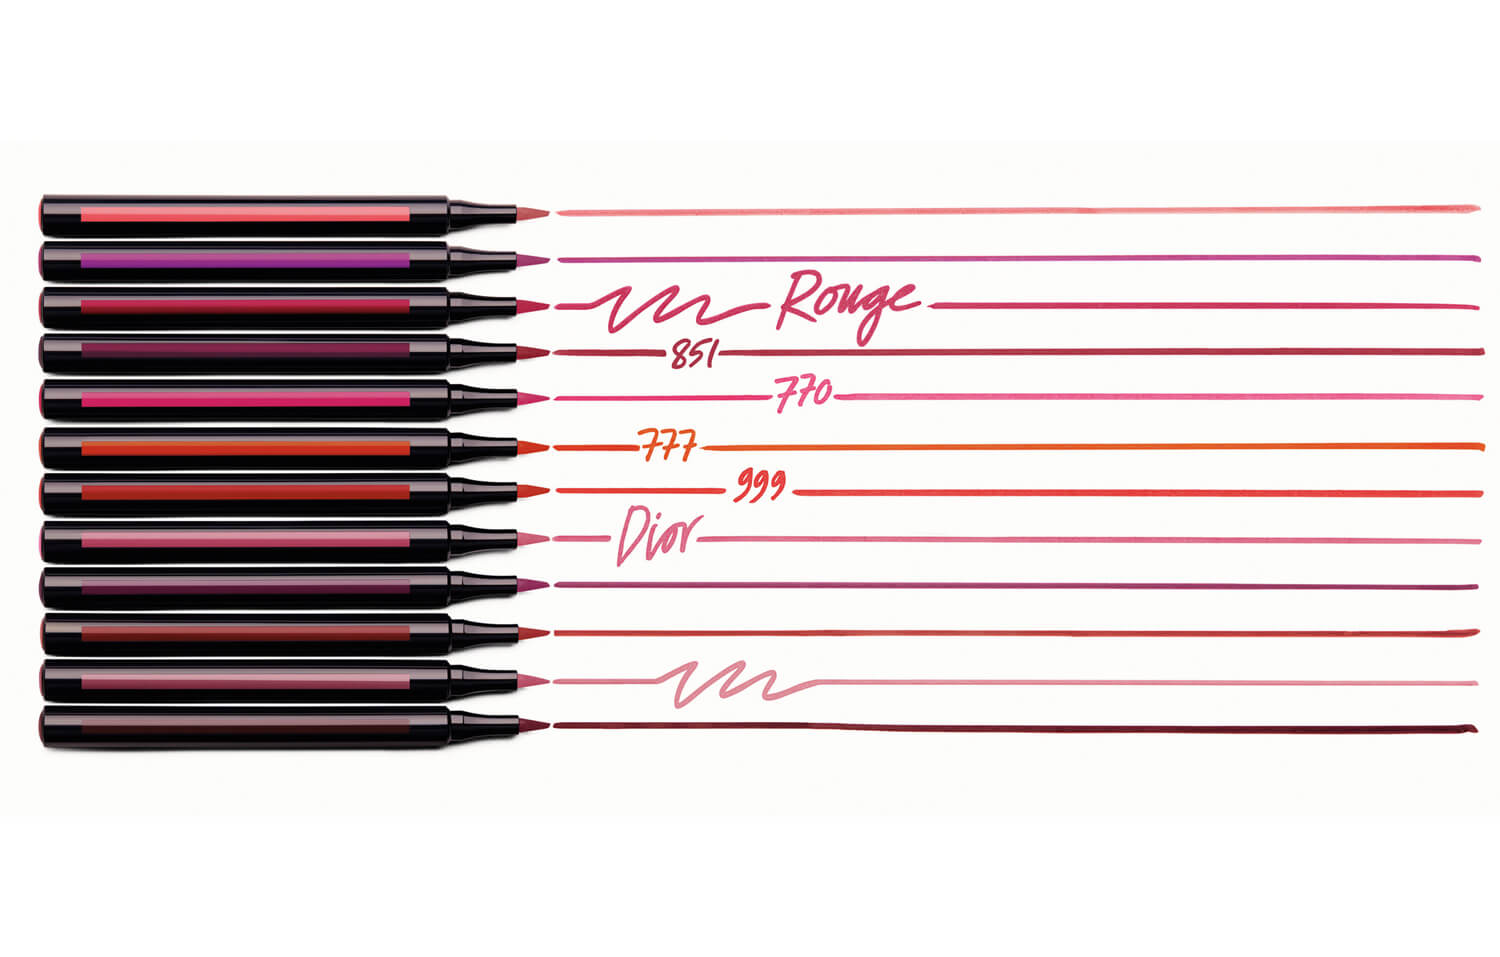 Dior-ultra-rouge1